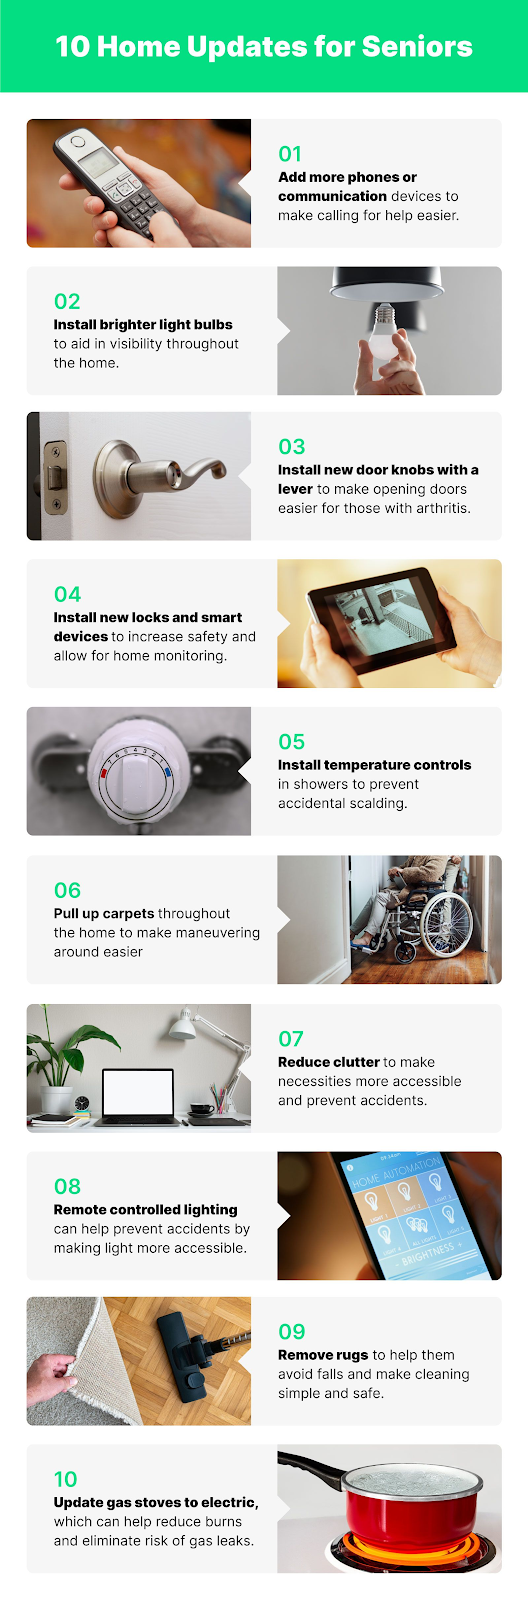 10 Home Aging in Place Updates for Seniors infographic